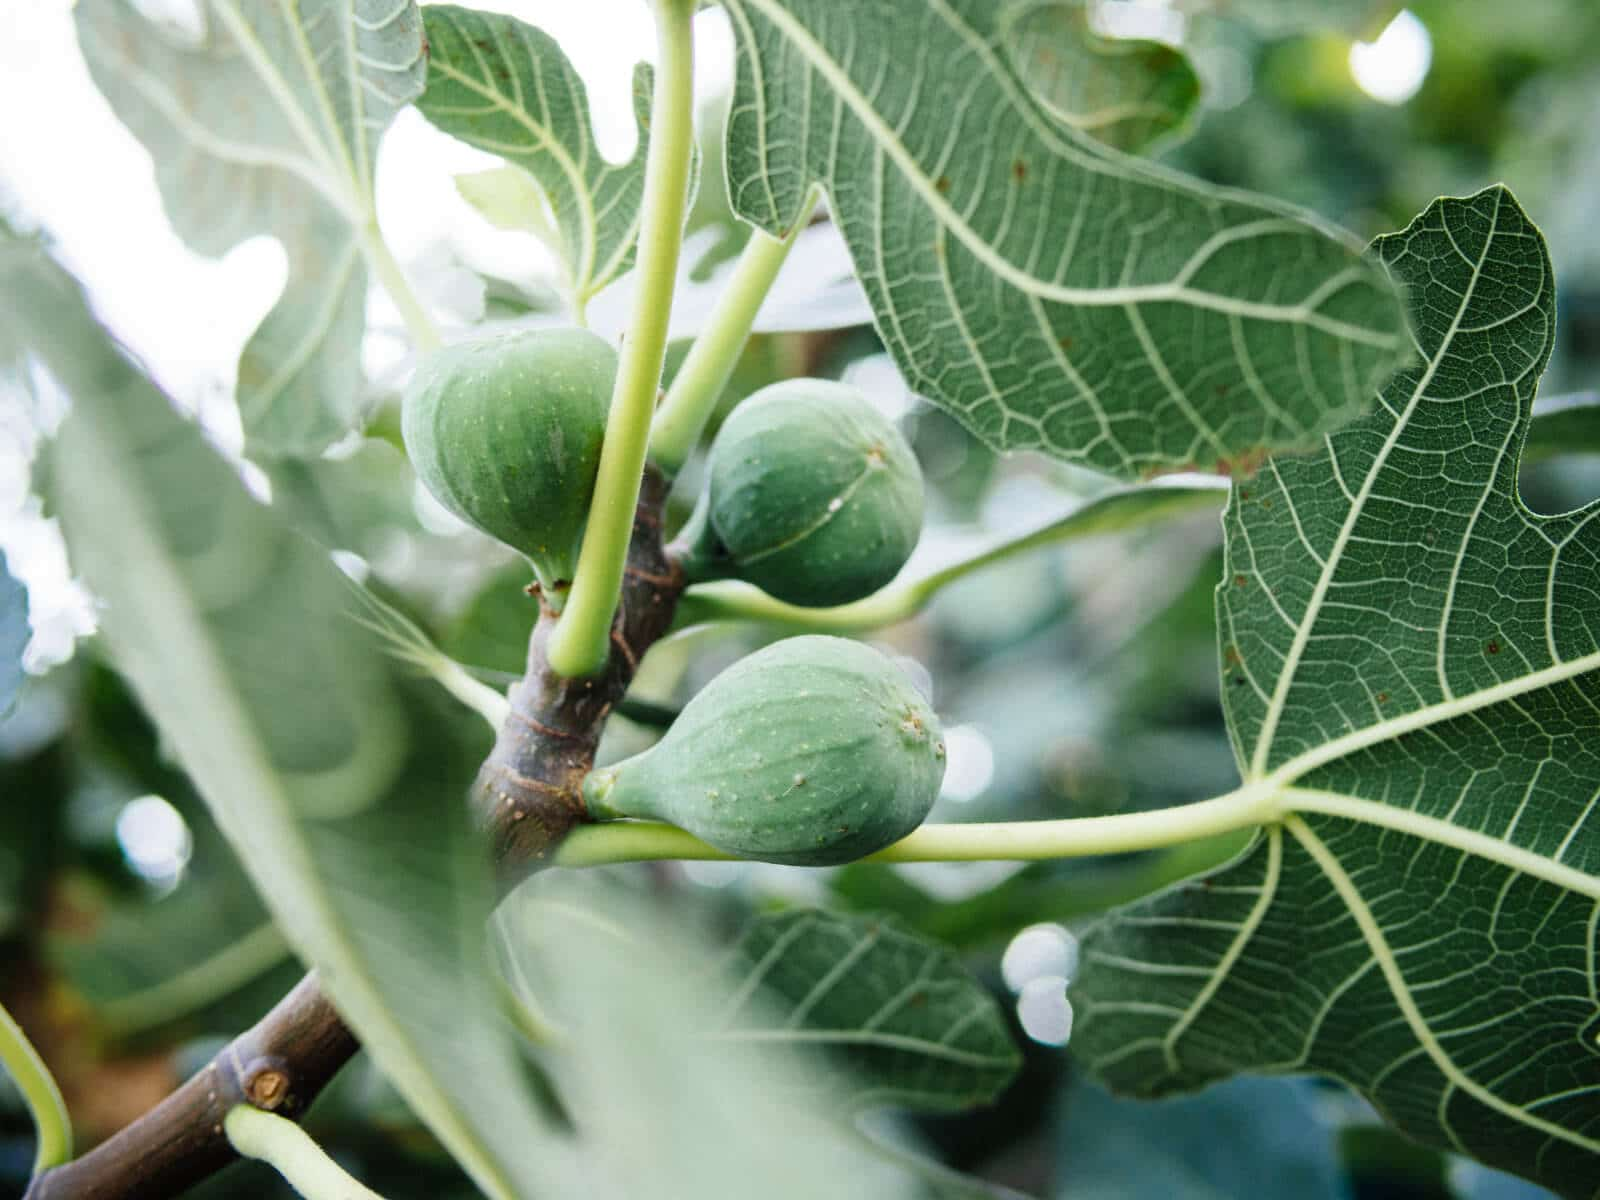 Harvest your fruits frequently to keep fig beetles off them